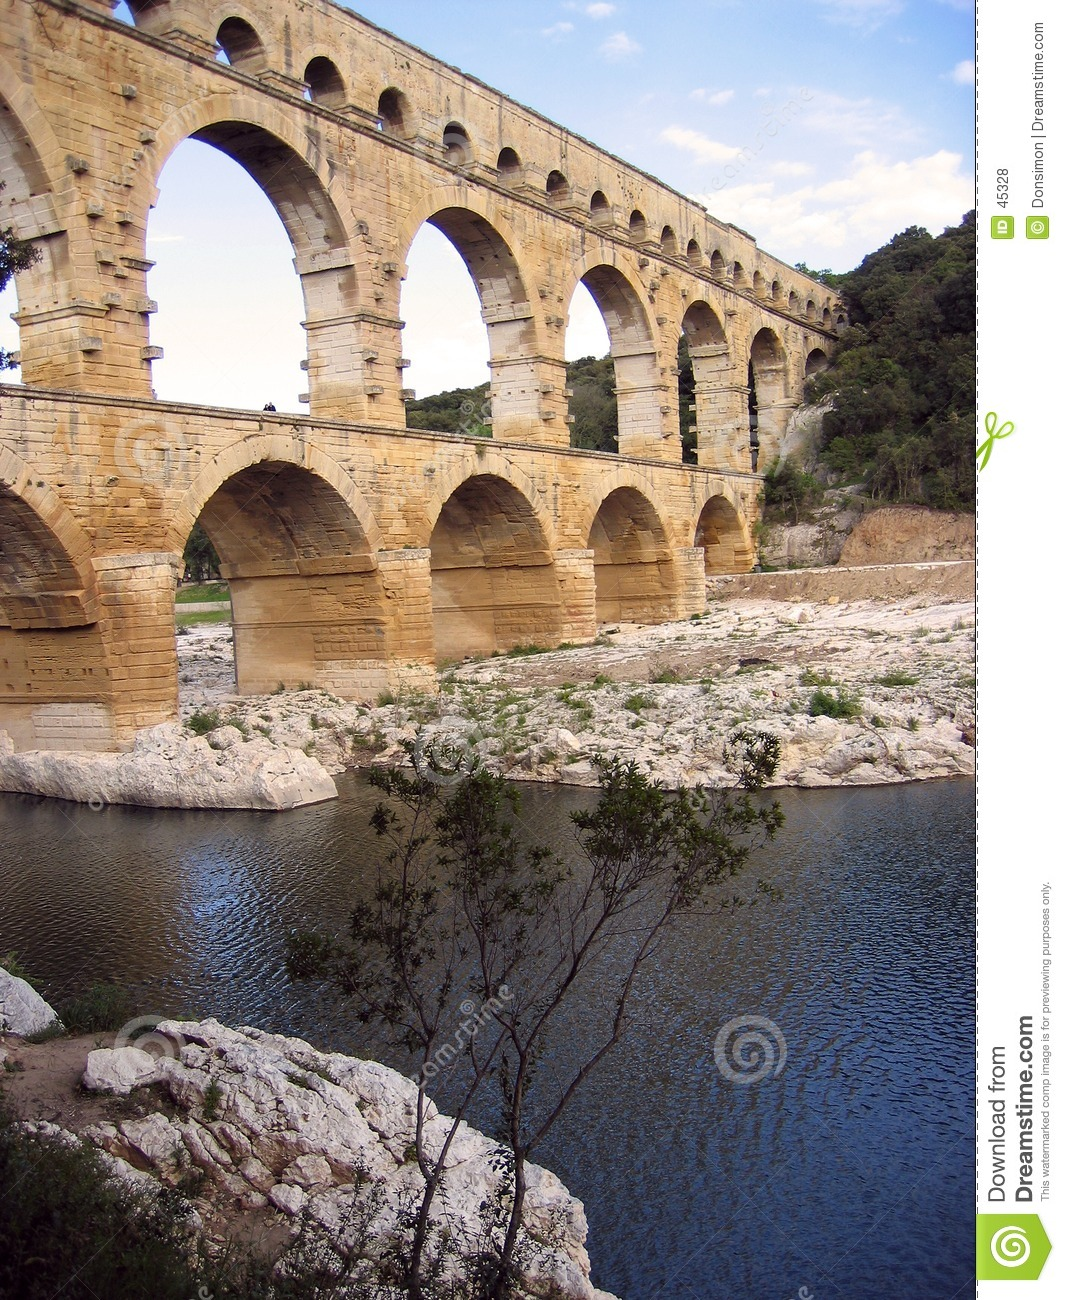 Aquaduct Gard pont du France